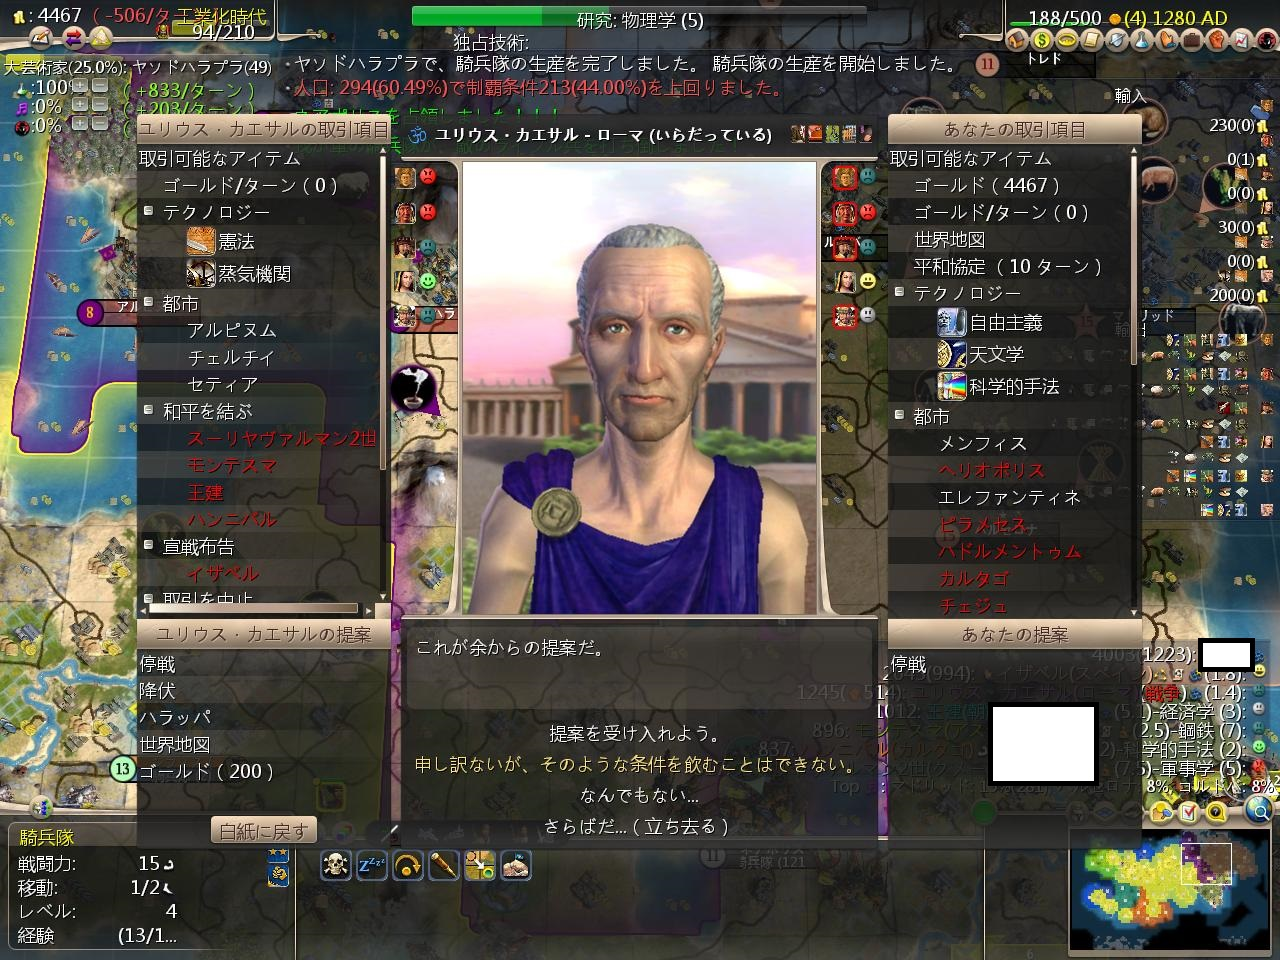 Civ4ScreenShot2113.JPG